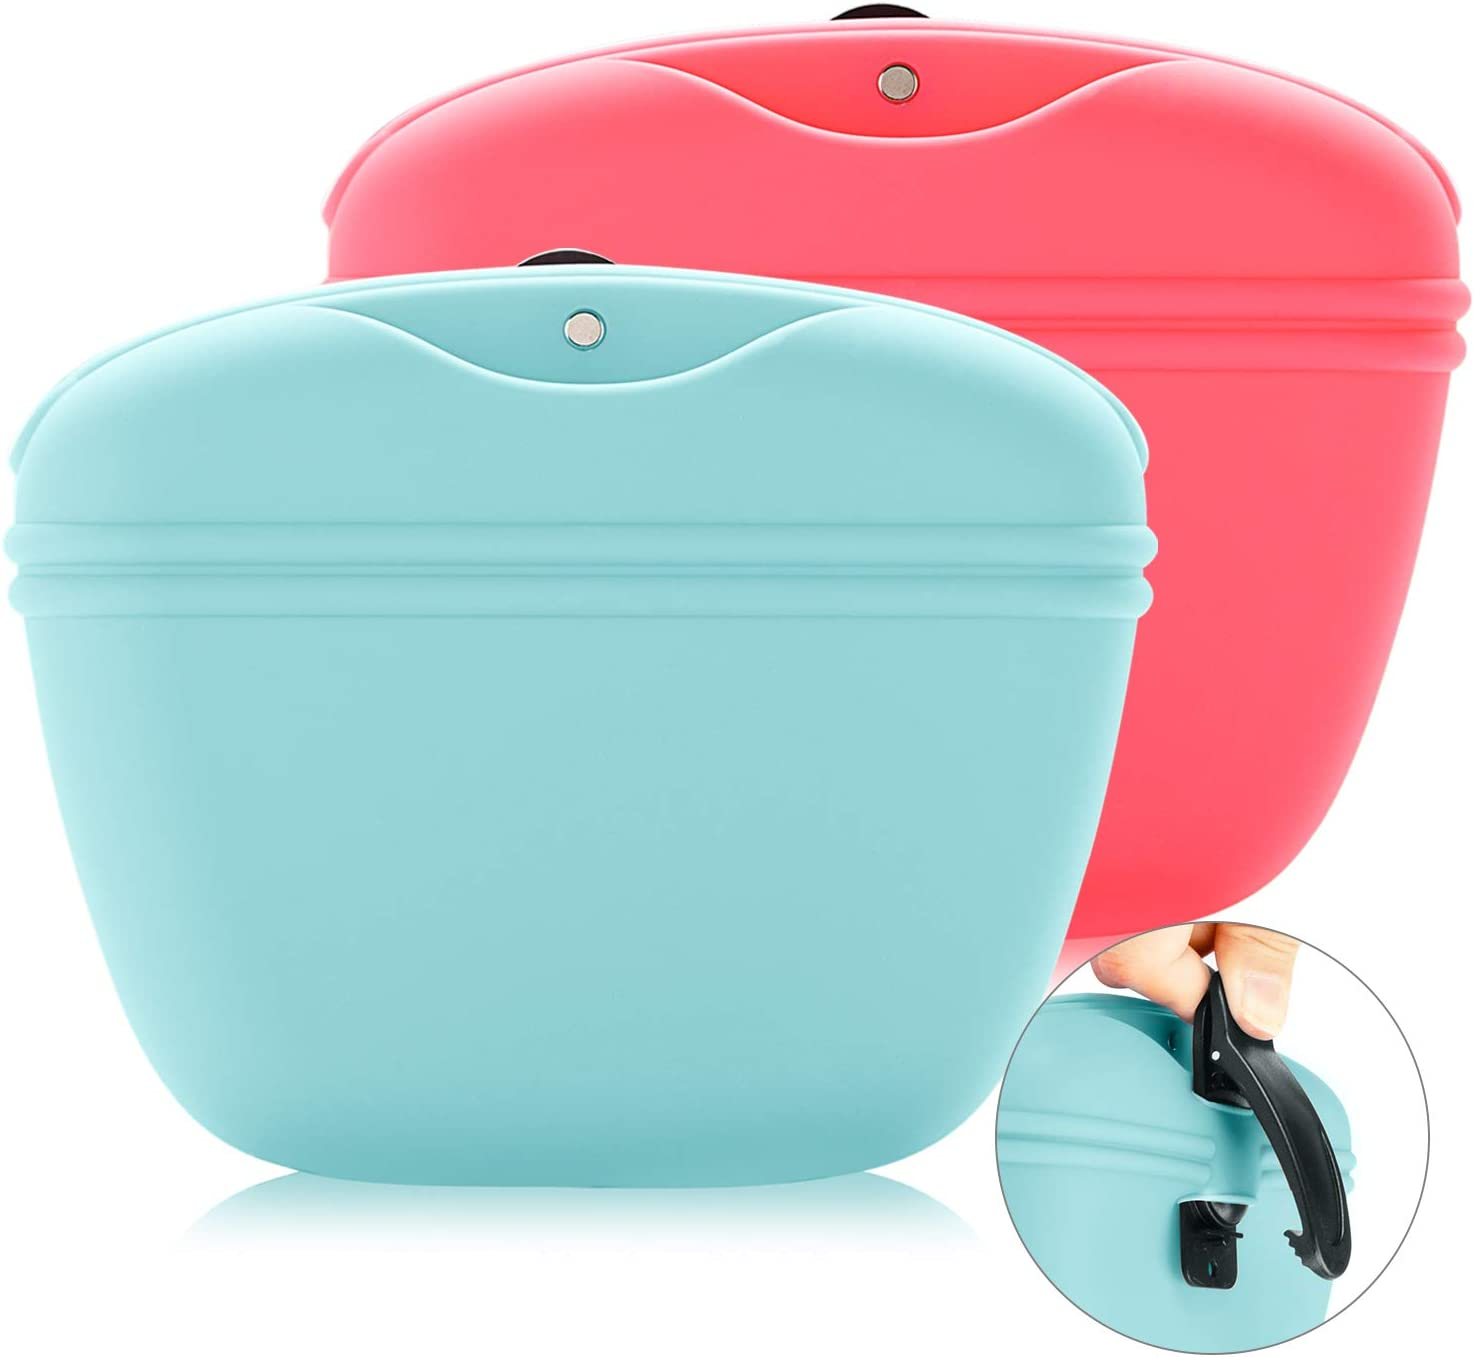 SHUNAI Dog Treat Pouch,Silicone Portable Dog Treat Bag, Food Snack Pouch Haversack,Pet Training Pocket with Clip and Magnetic Closing Two Packs Black Blue Pink Green